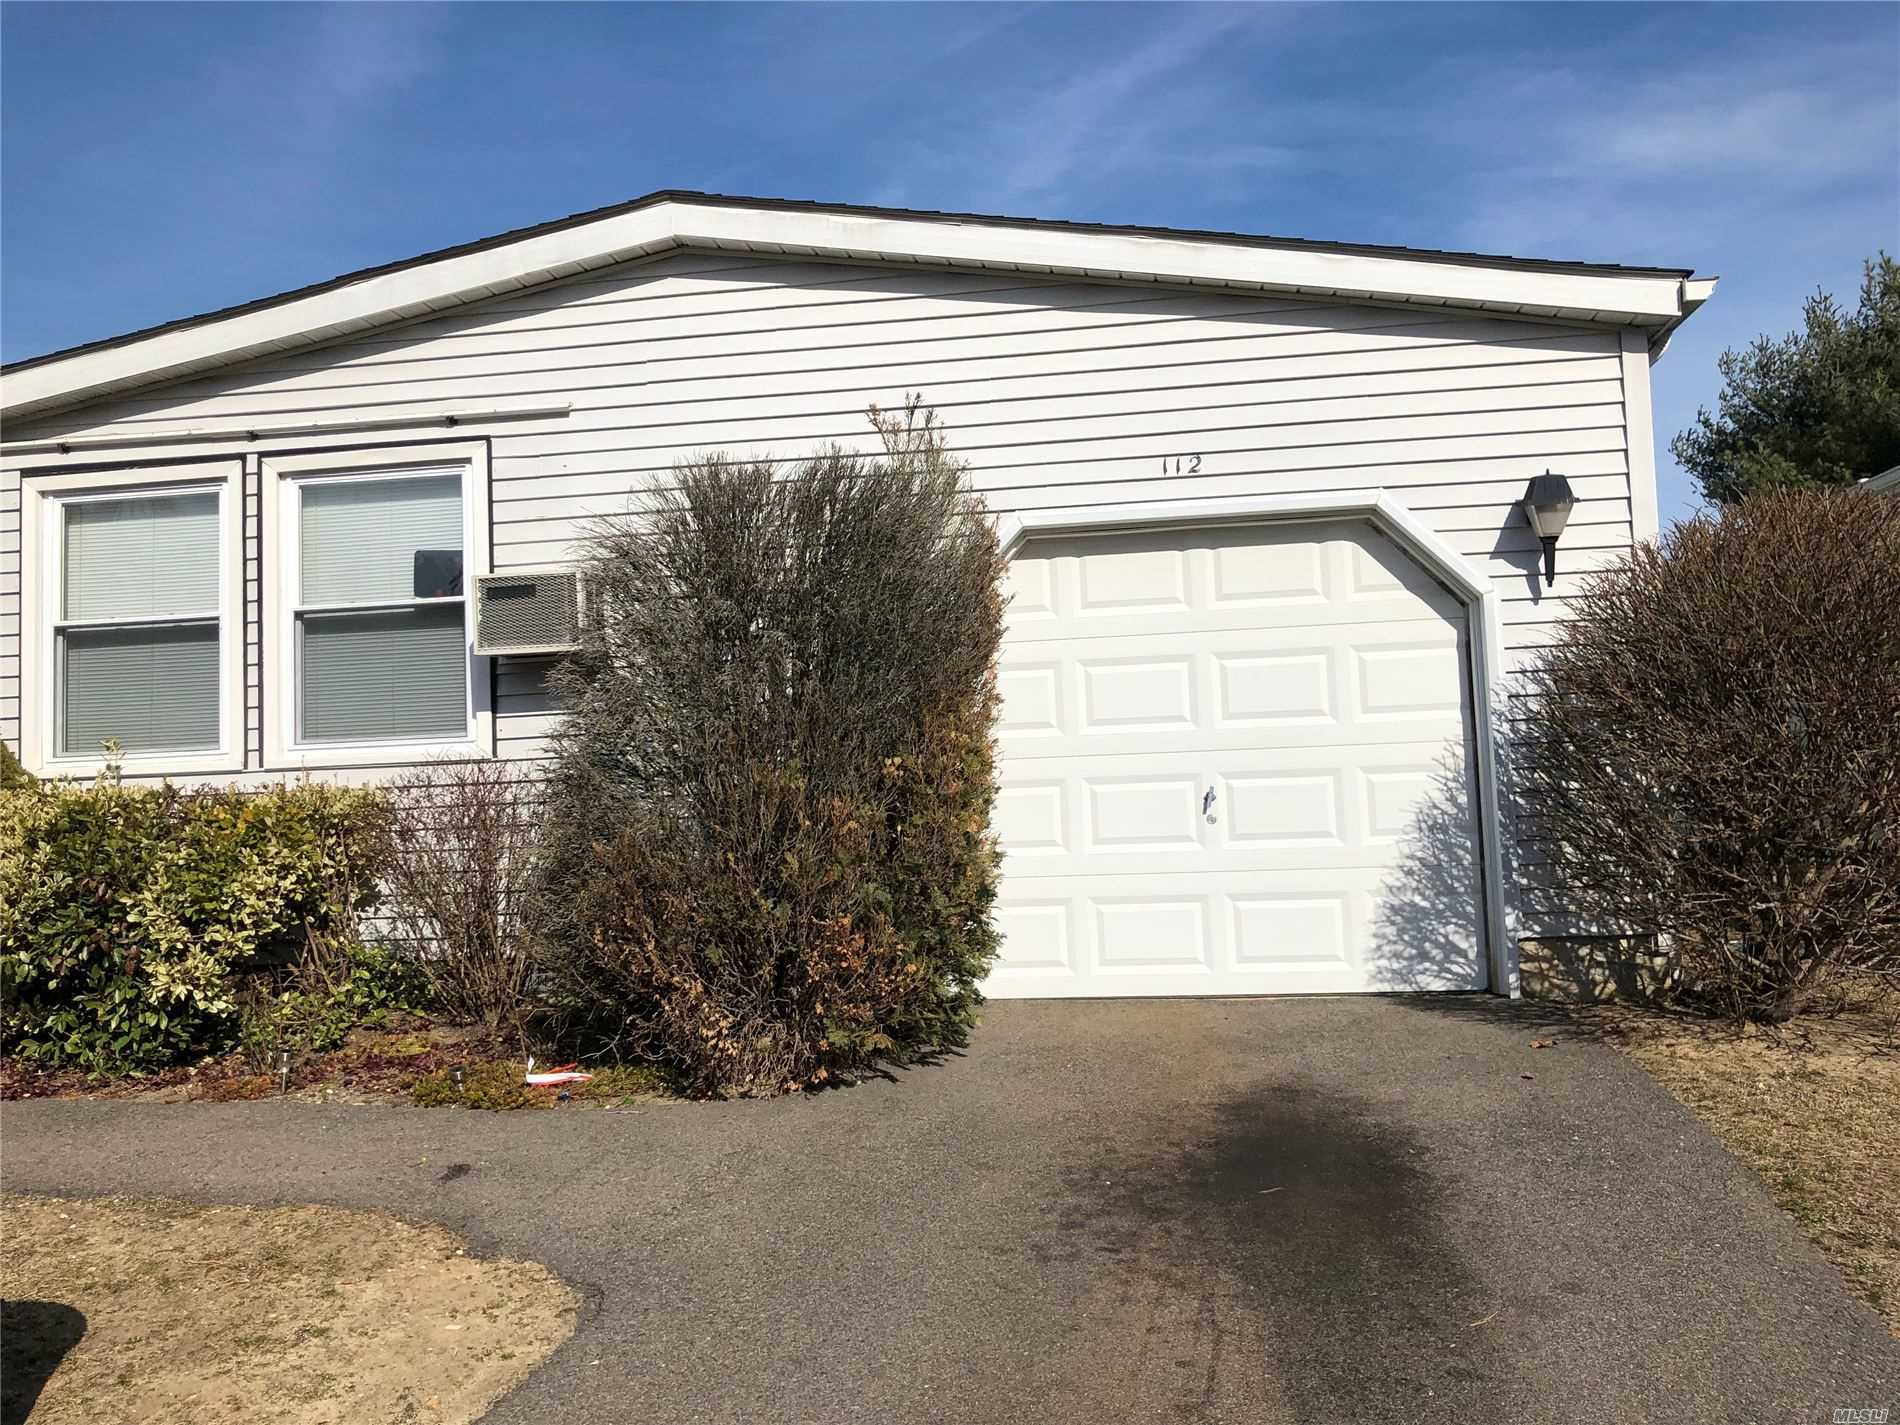 Property for sale at 112 W Village Cir, Manorville NY 11949, Manorville,  New York 11949